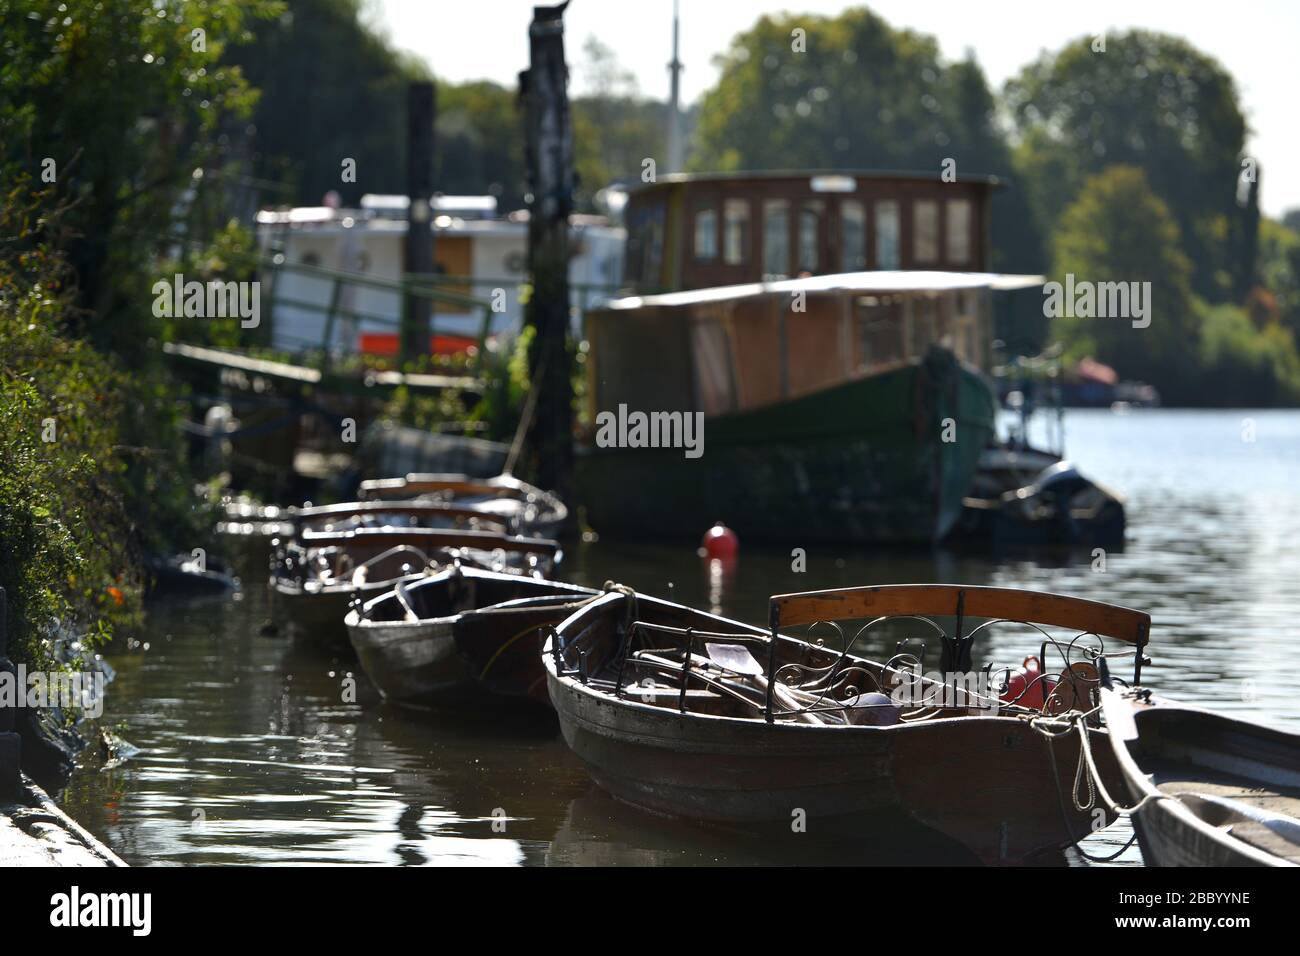 Boats on the Thames at Richmond, London, UK Stock Photo